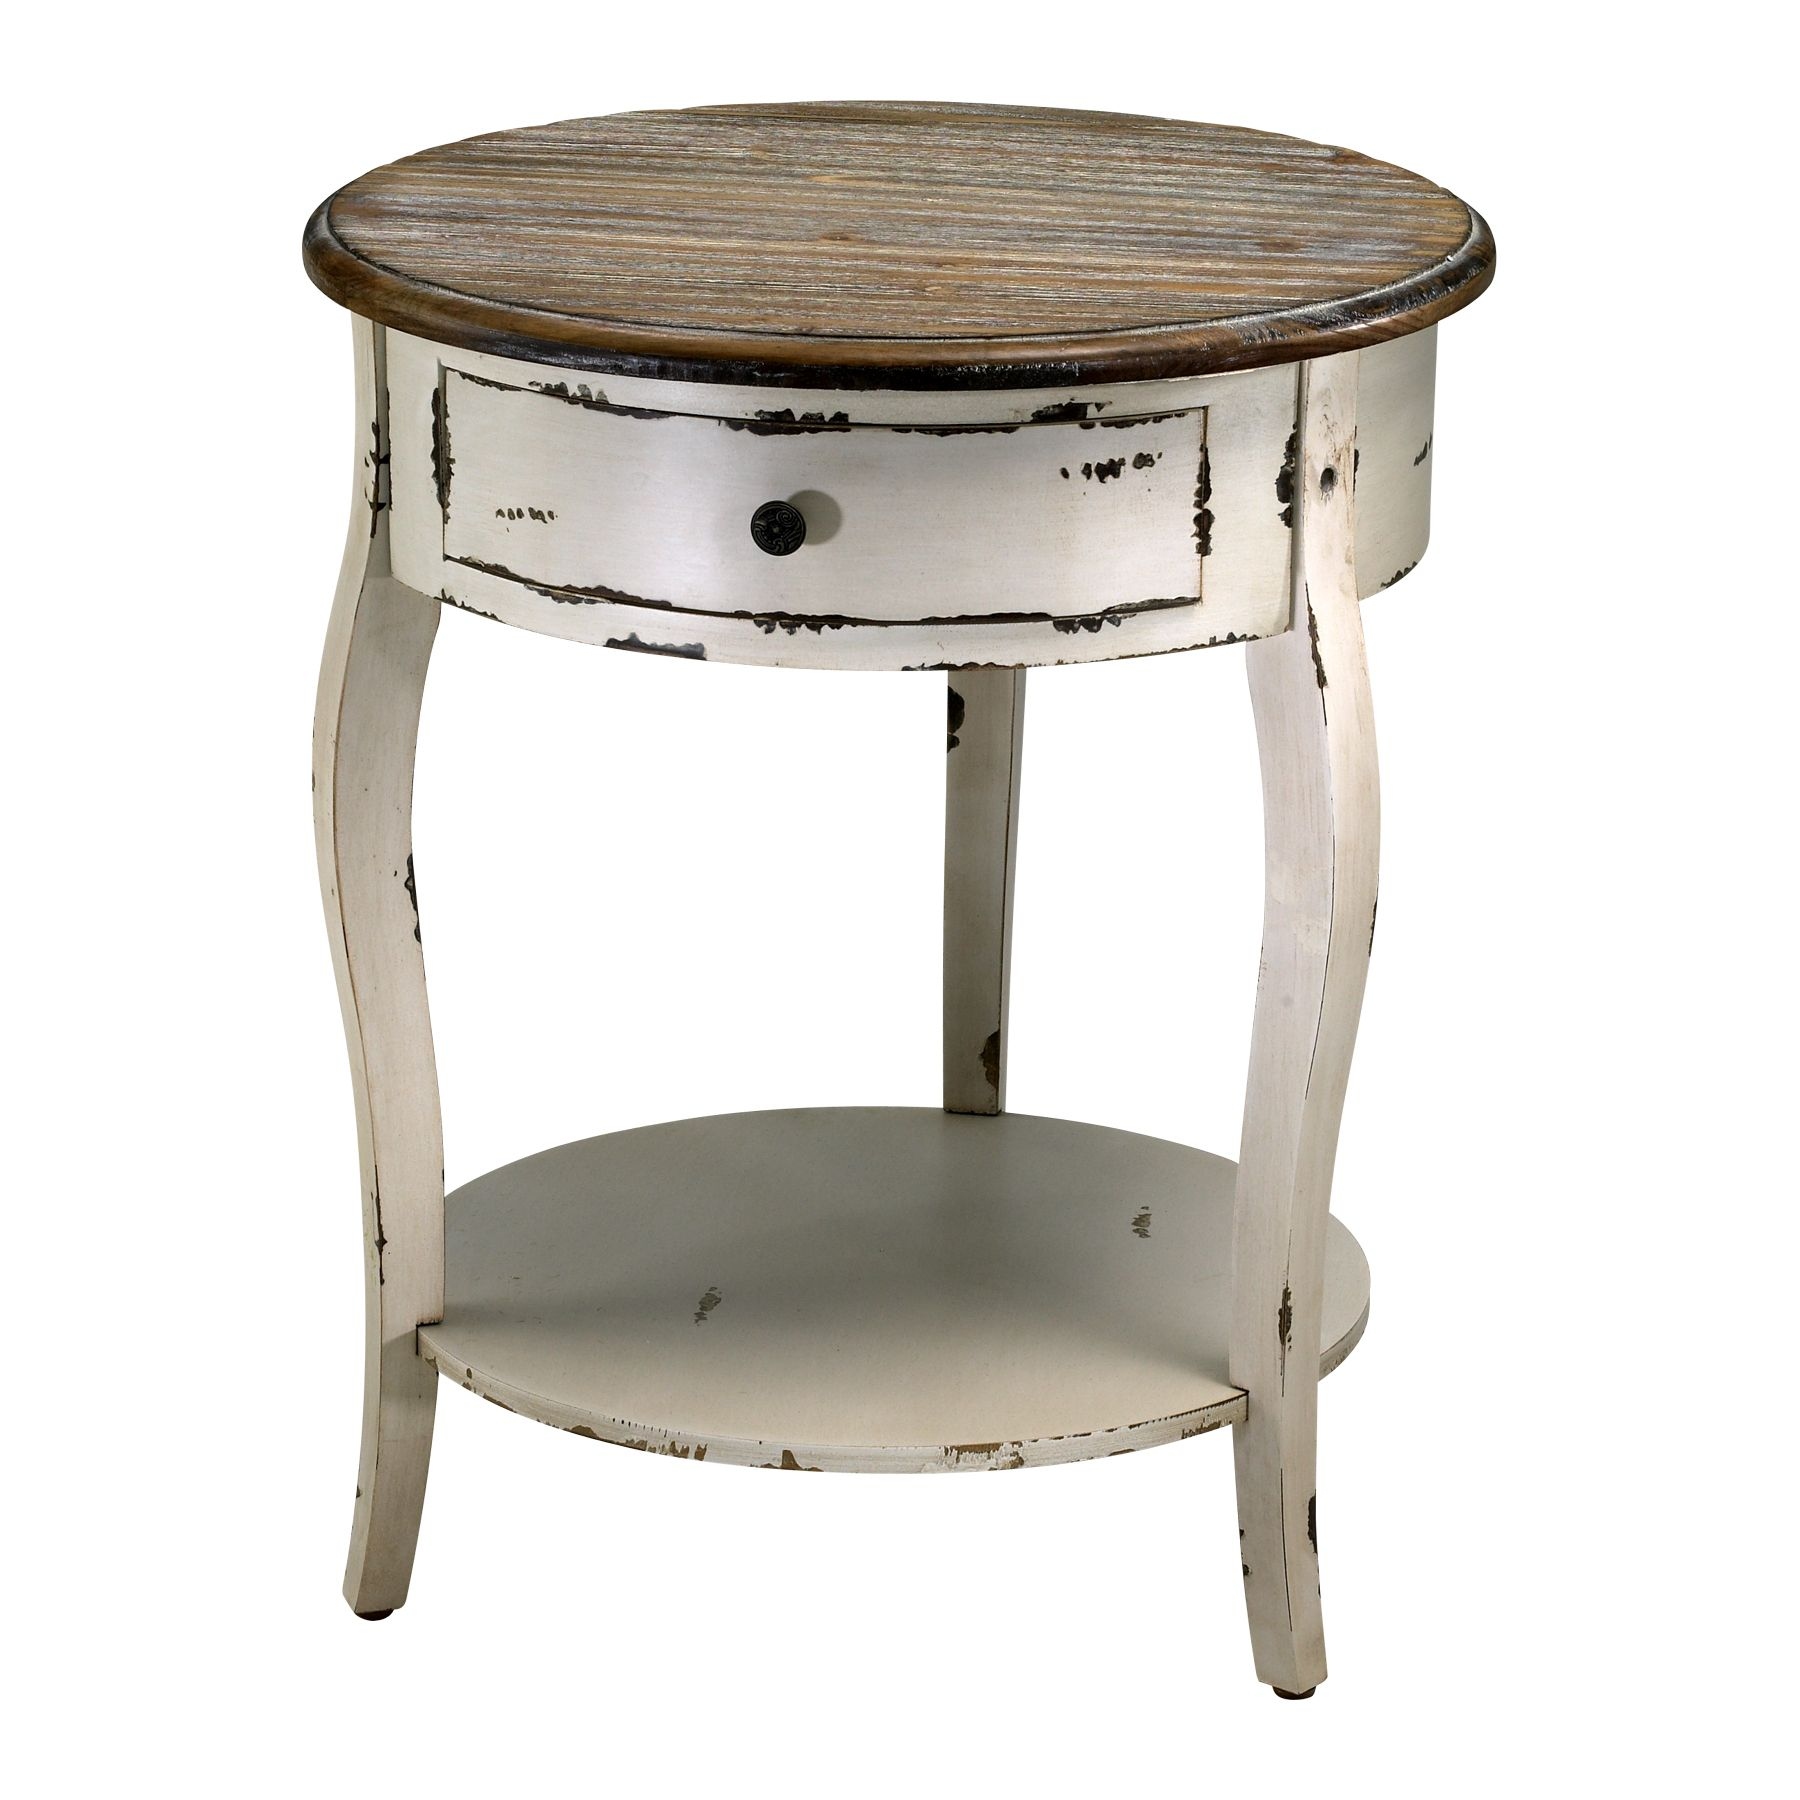 distressed wood chandeliers abelard white round accent table with storage side fall quilted runner patterns outdoor living patio furniture expandable dining dresser handles